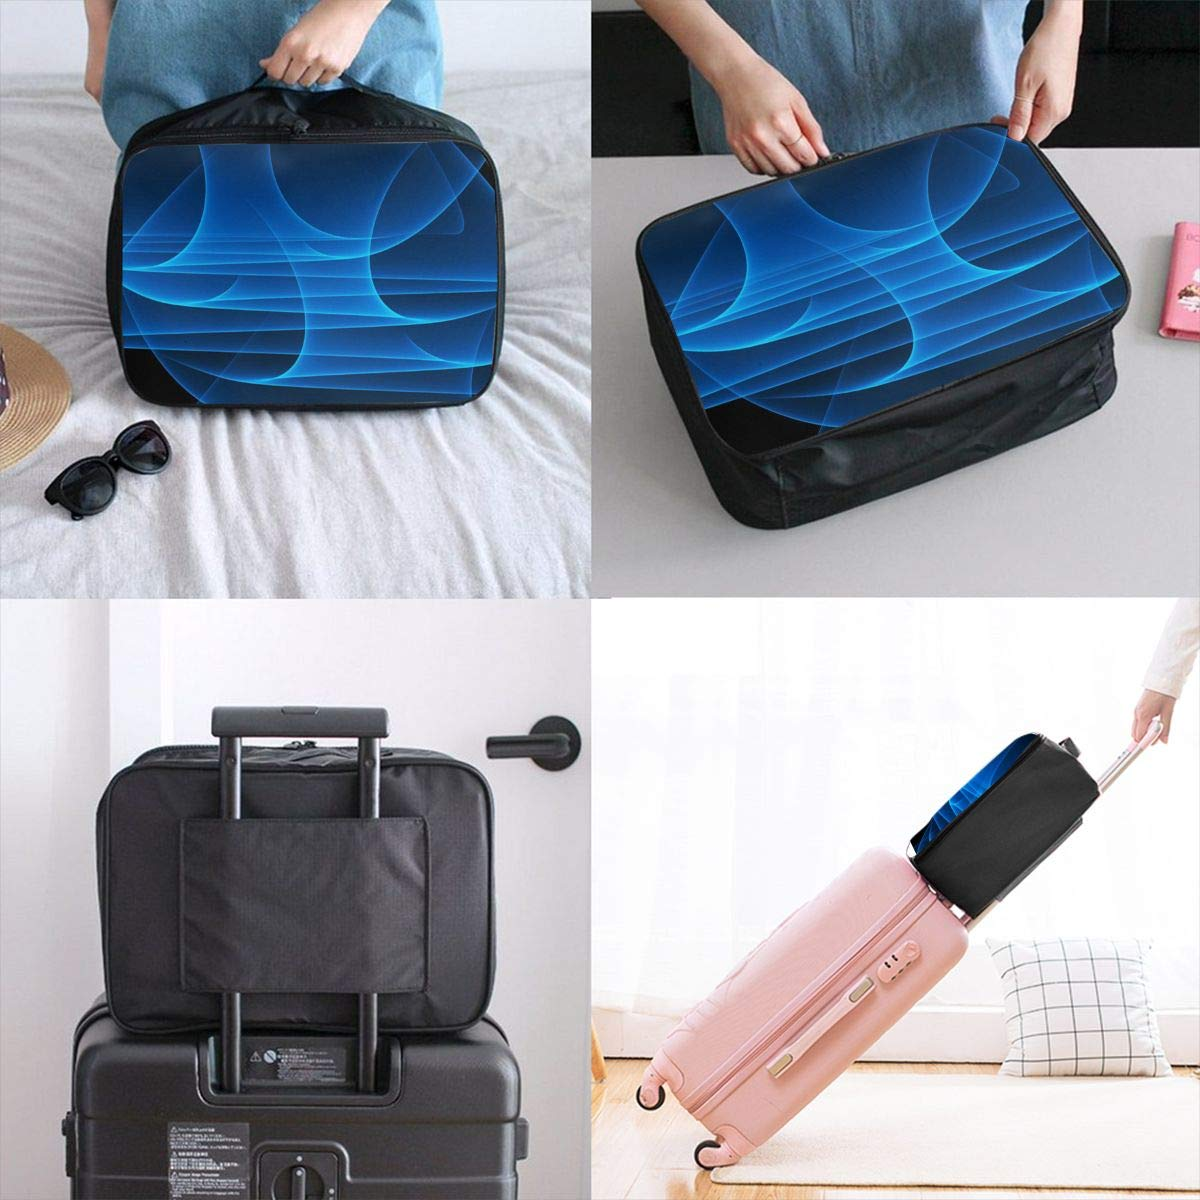 Colorful Shape Art Travel Lightweight Waterproof Foldable Storage Carry Luggage Large Capacity Portable Luggage Bag Duffel Bag